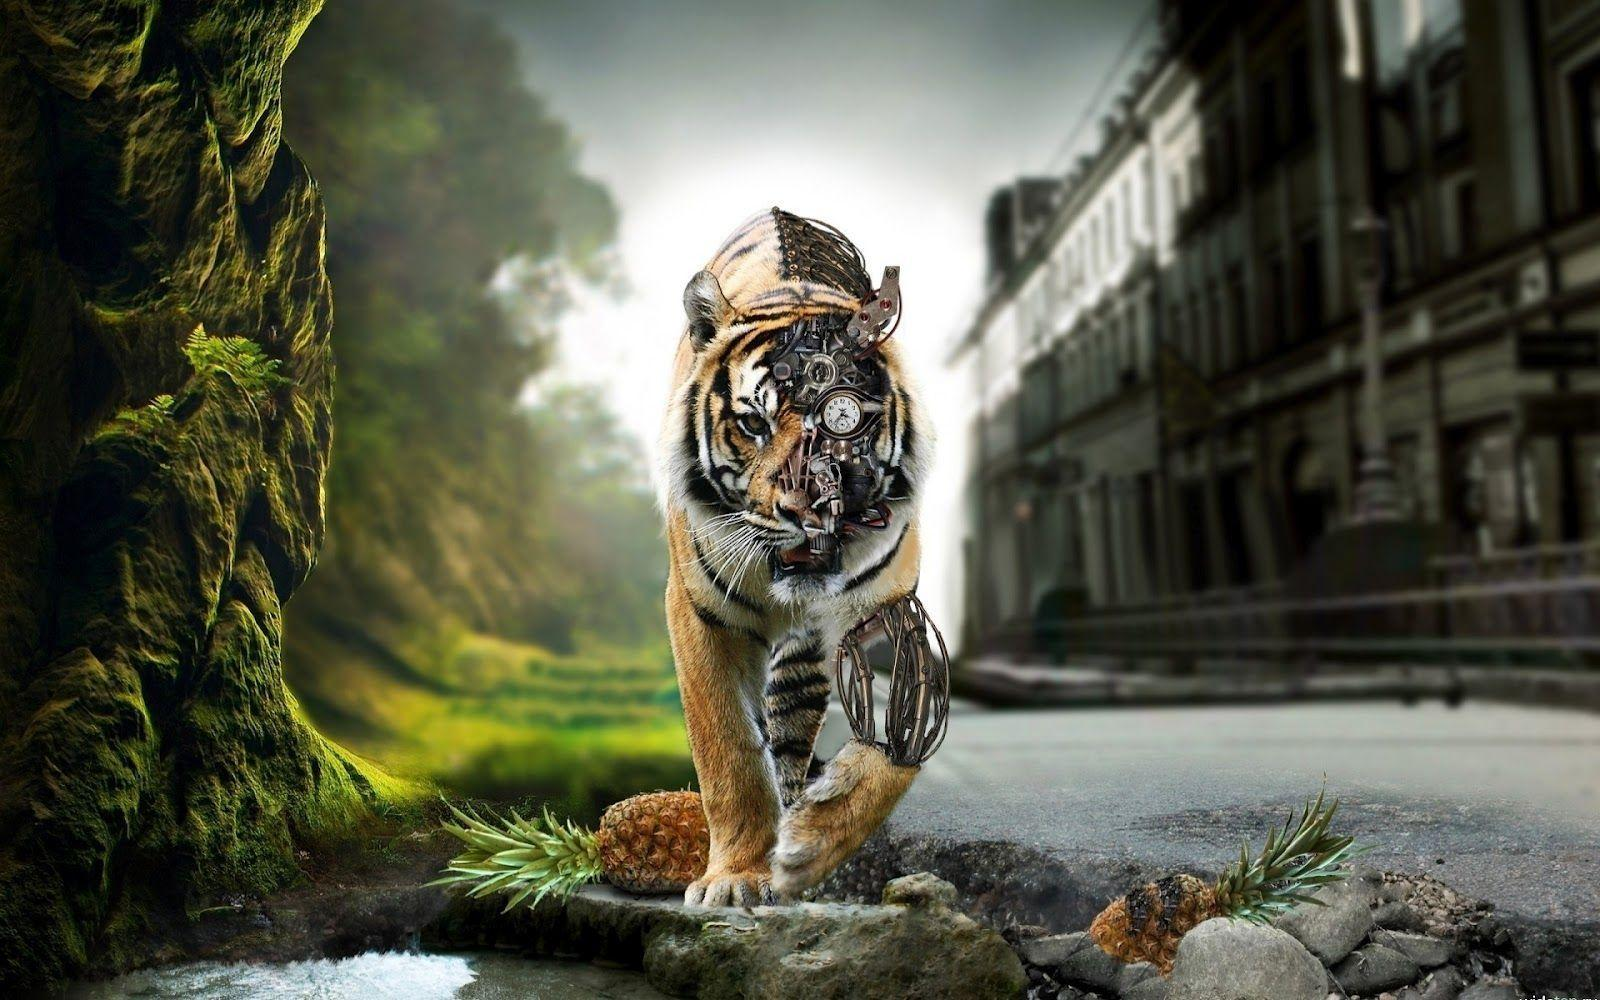 Wallpapers For > Tiger Wallpaper Hd For Desktop